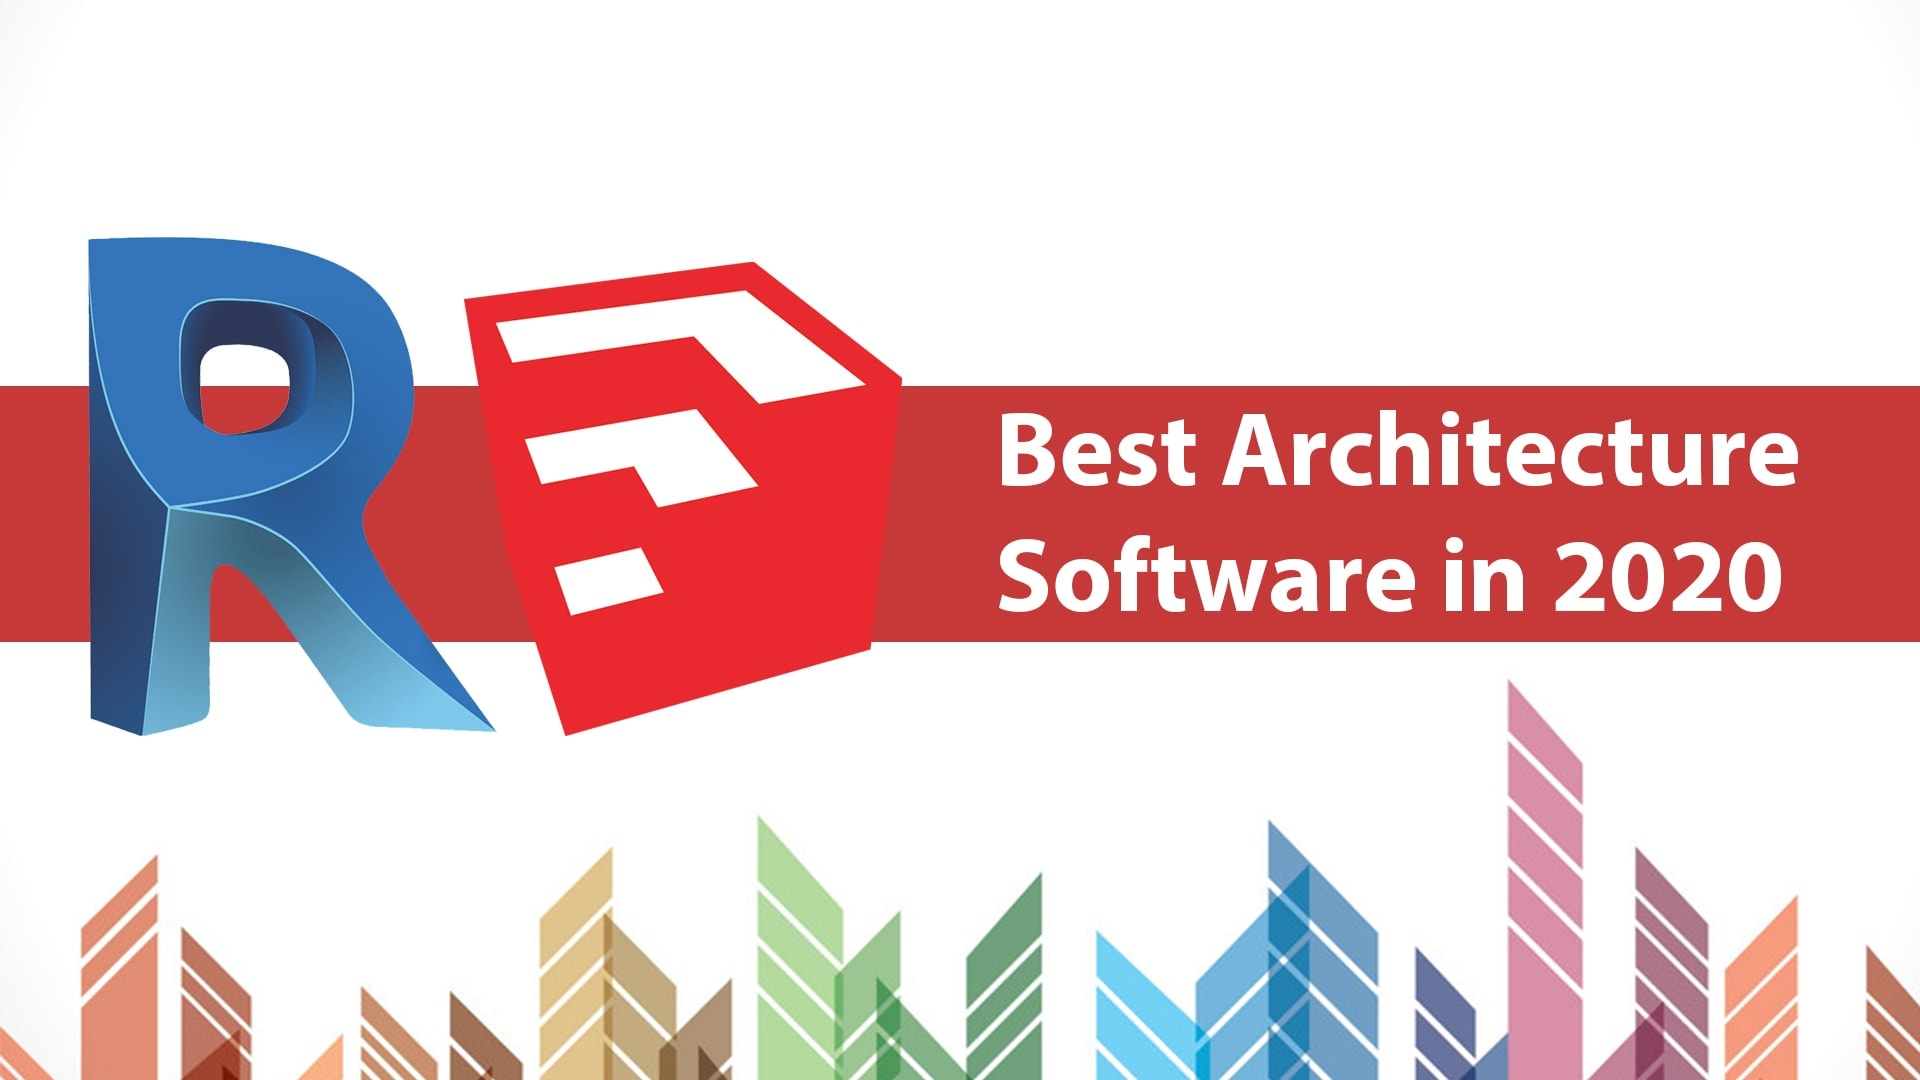 Best Architecture Software in 2020